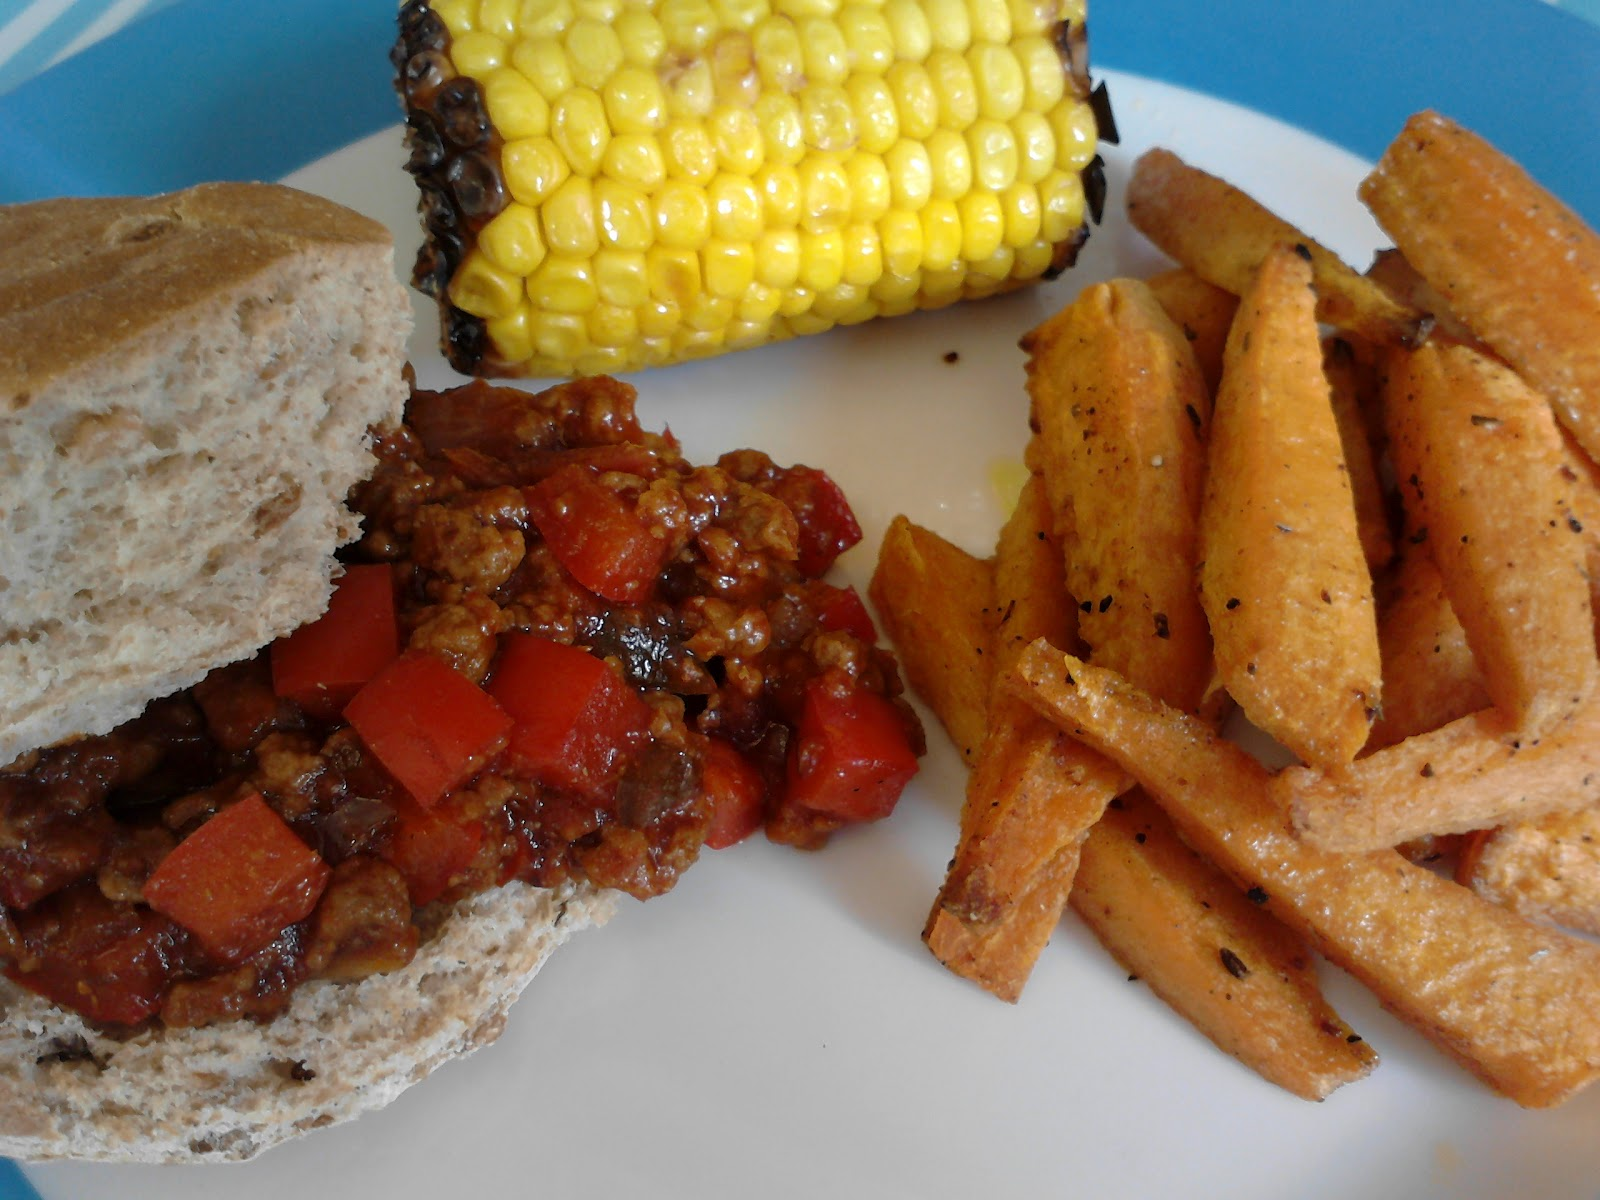 We Don't Eat Anything With A Face: Vegetarian Sloppy Joes